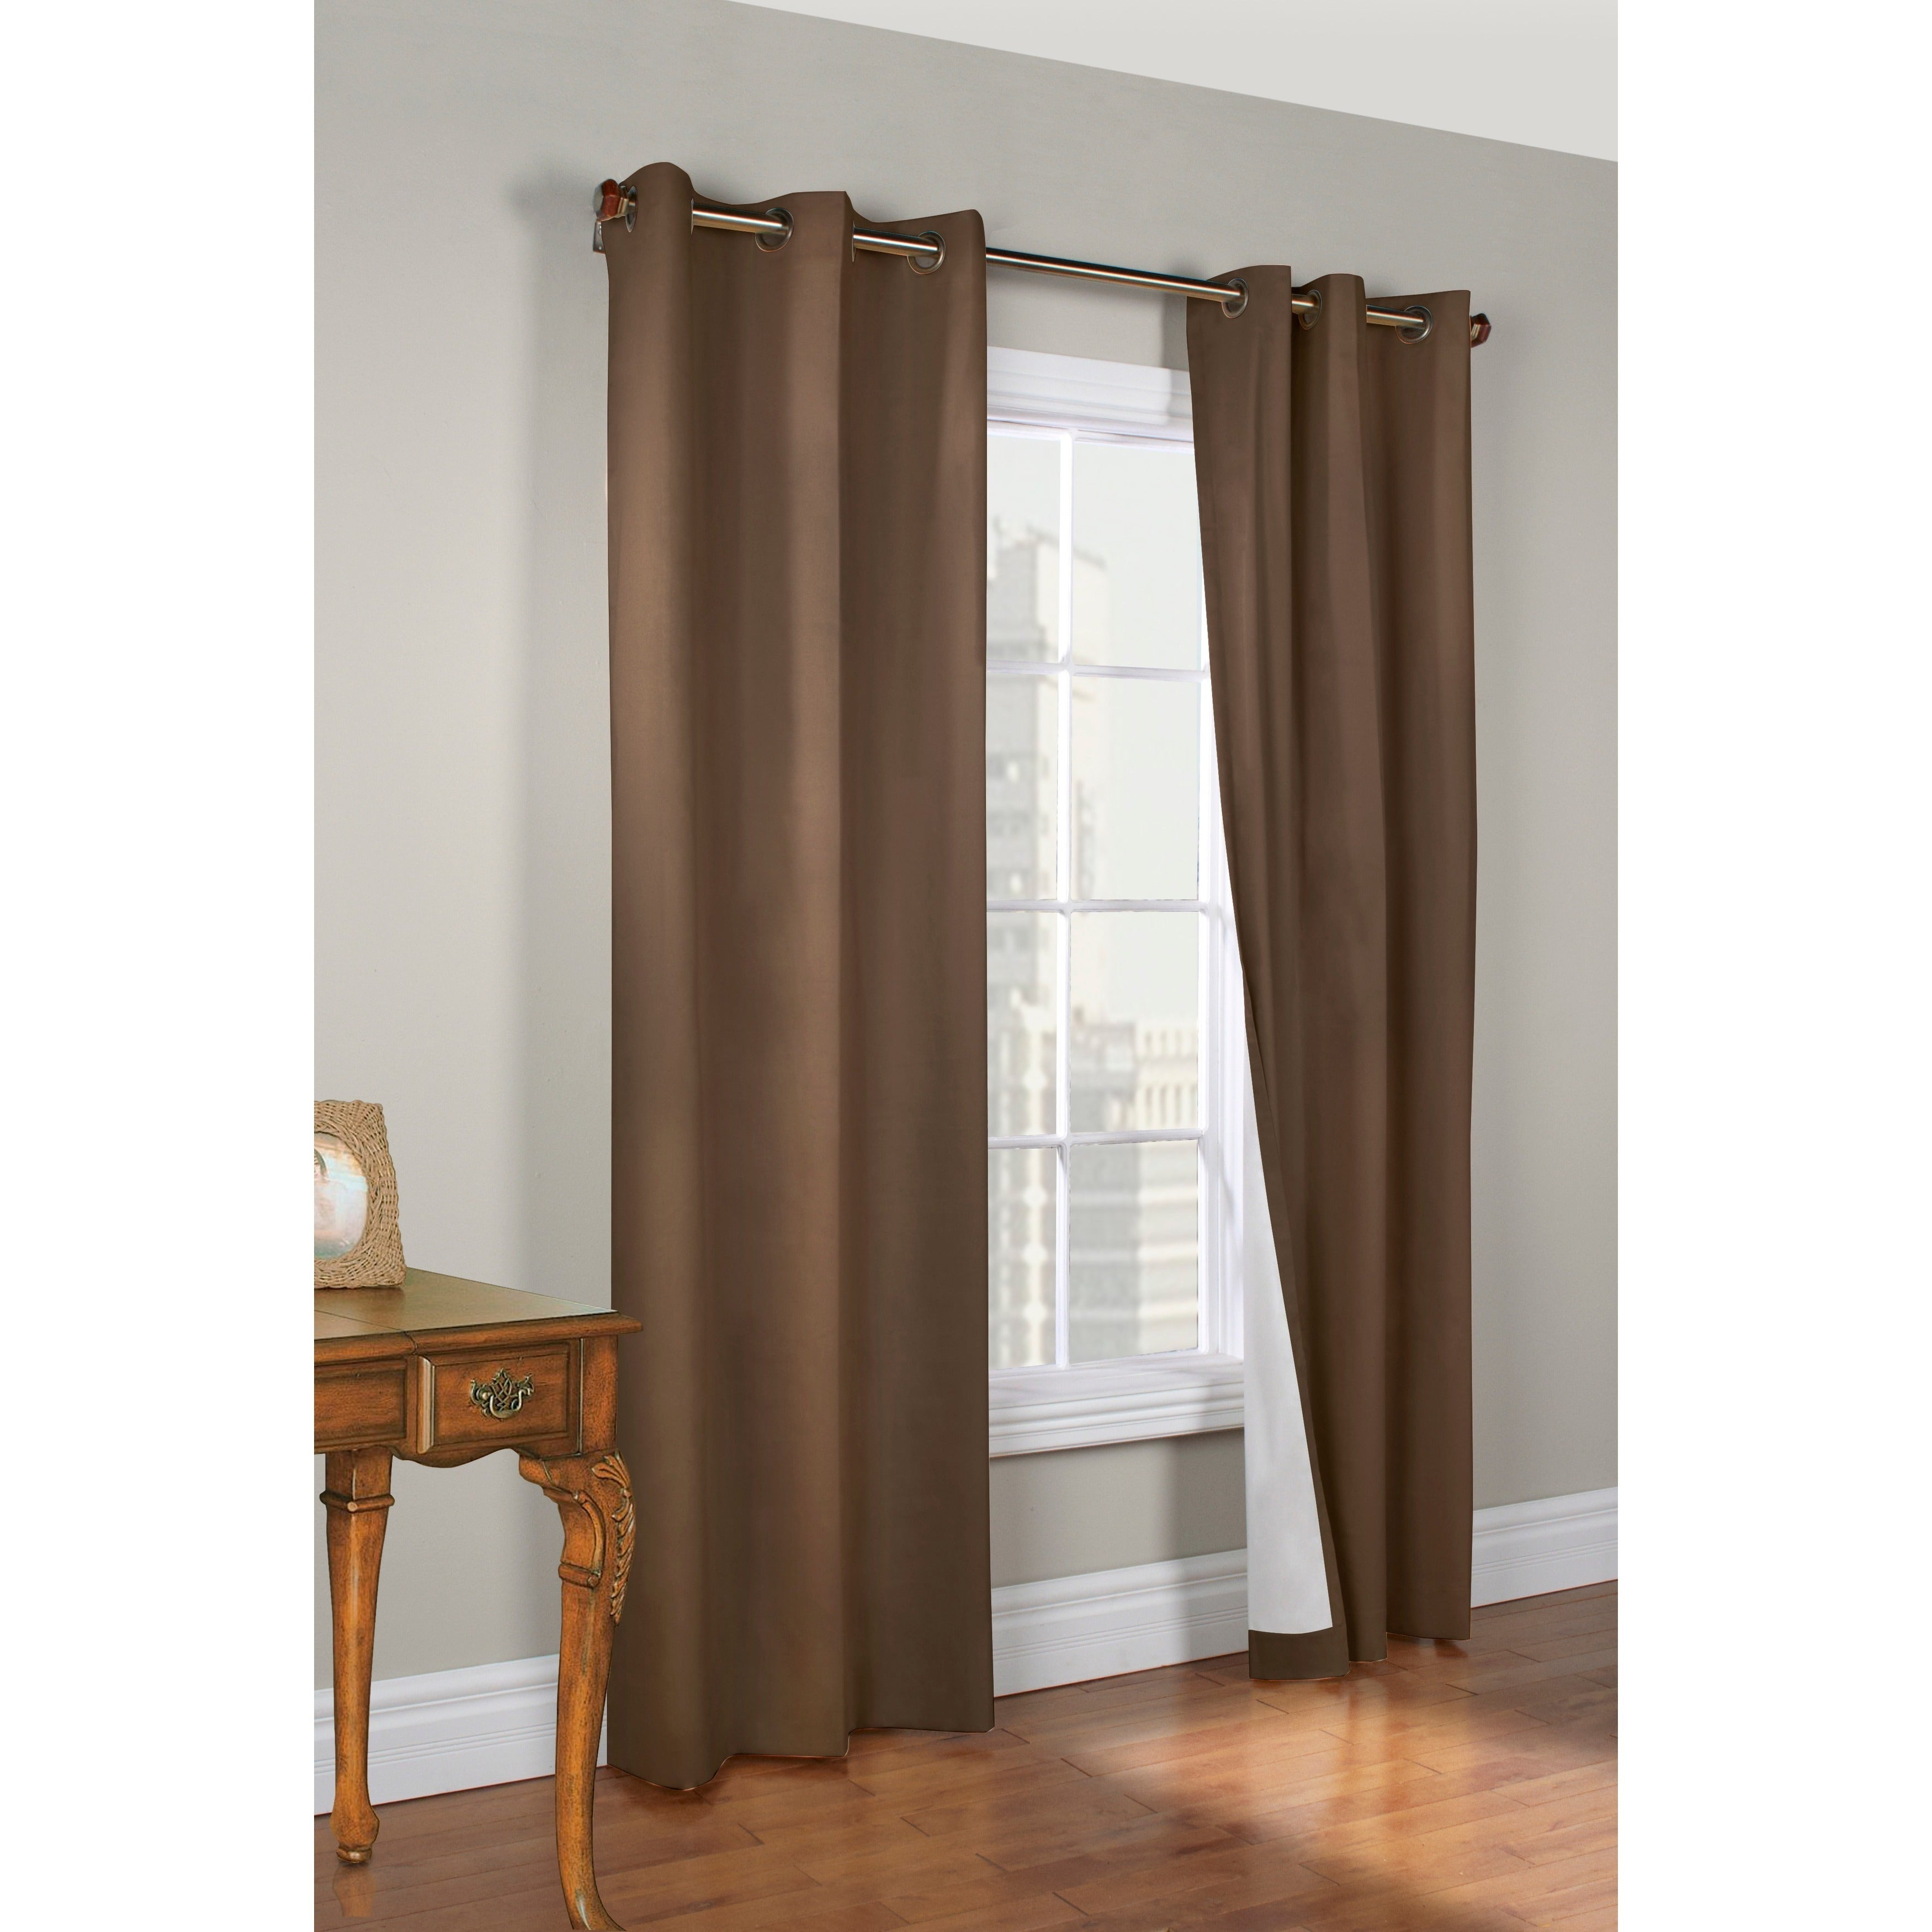 Thermalogic Weathermate Insulated Grommet Curtain Panel Pair Intended For Insulated Cotton Curtain Panel Pairs (View 2 of 20)